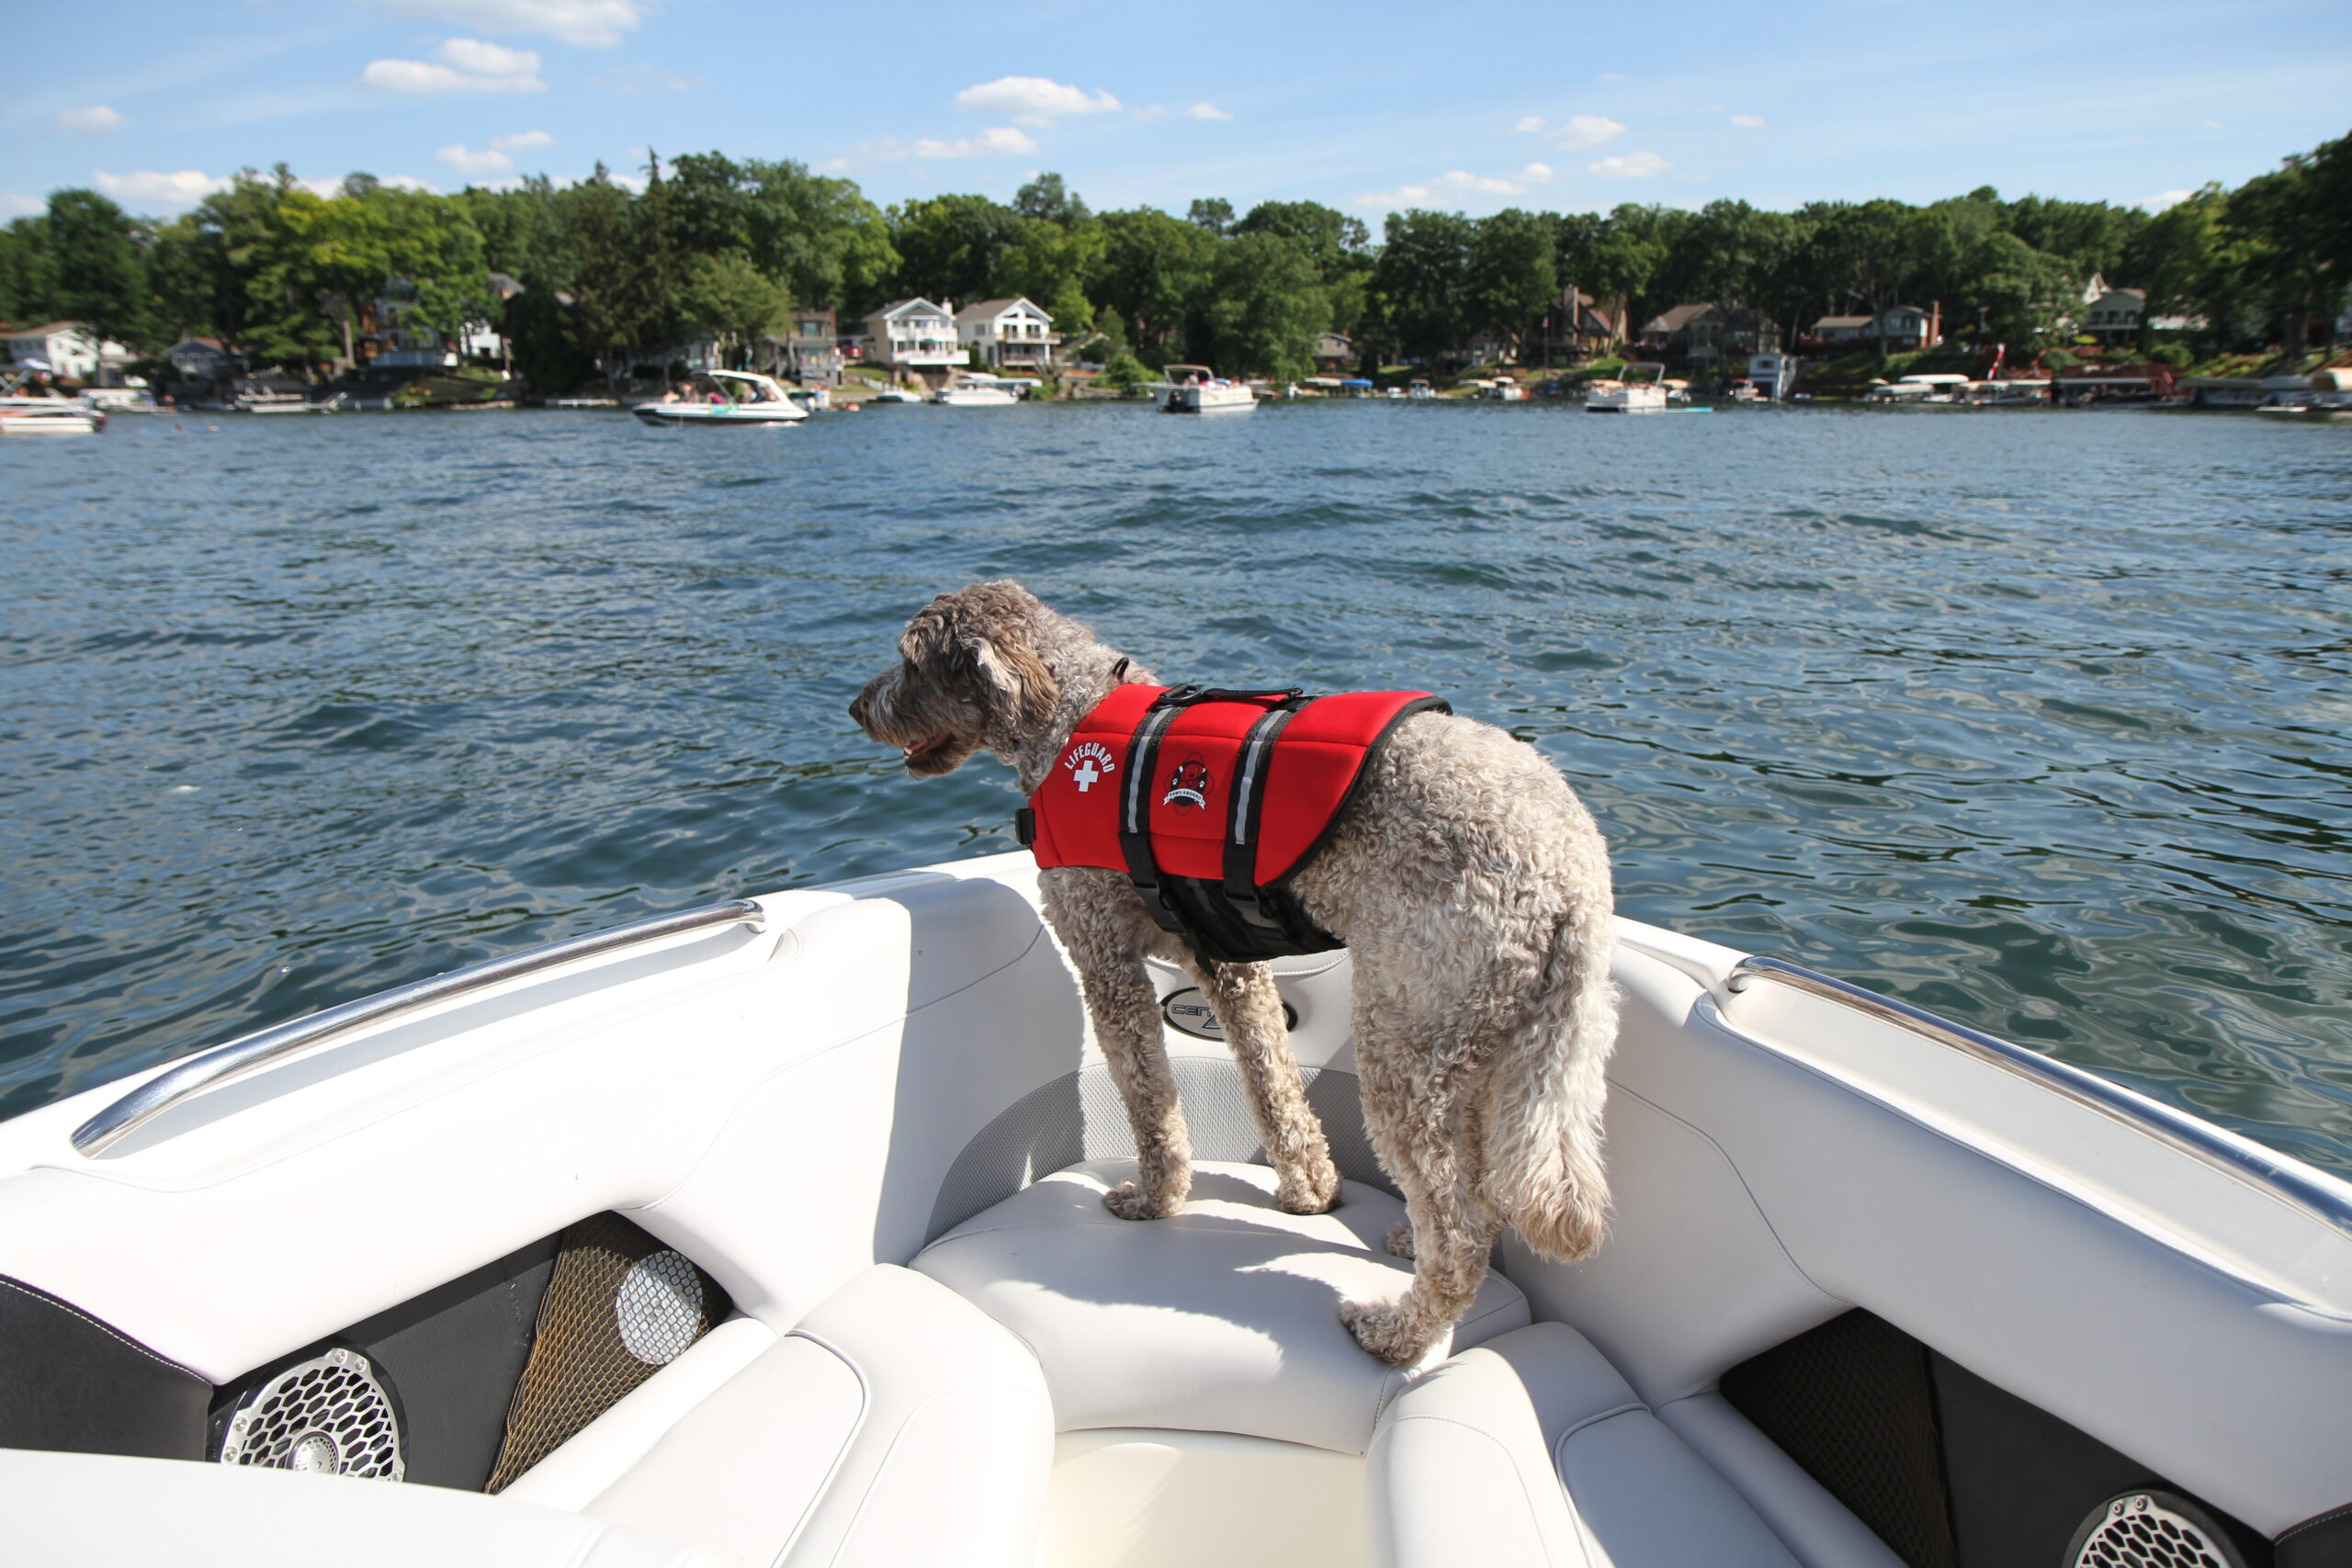 Dogs on Boats – Safety & Tips